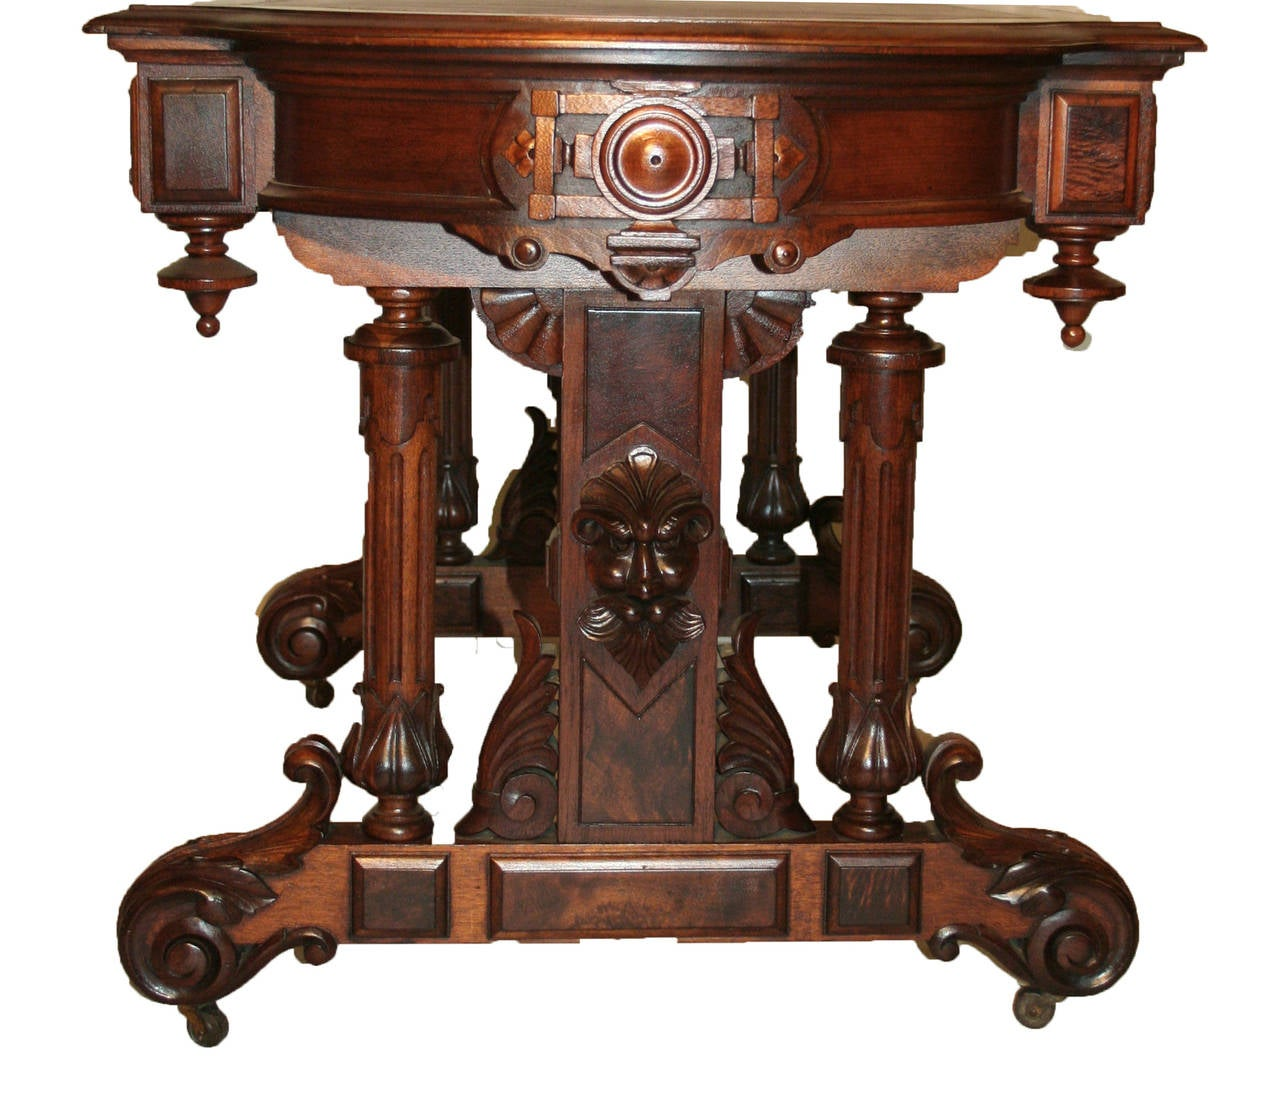 19th Century American Renaissance Revival Walnut Table And